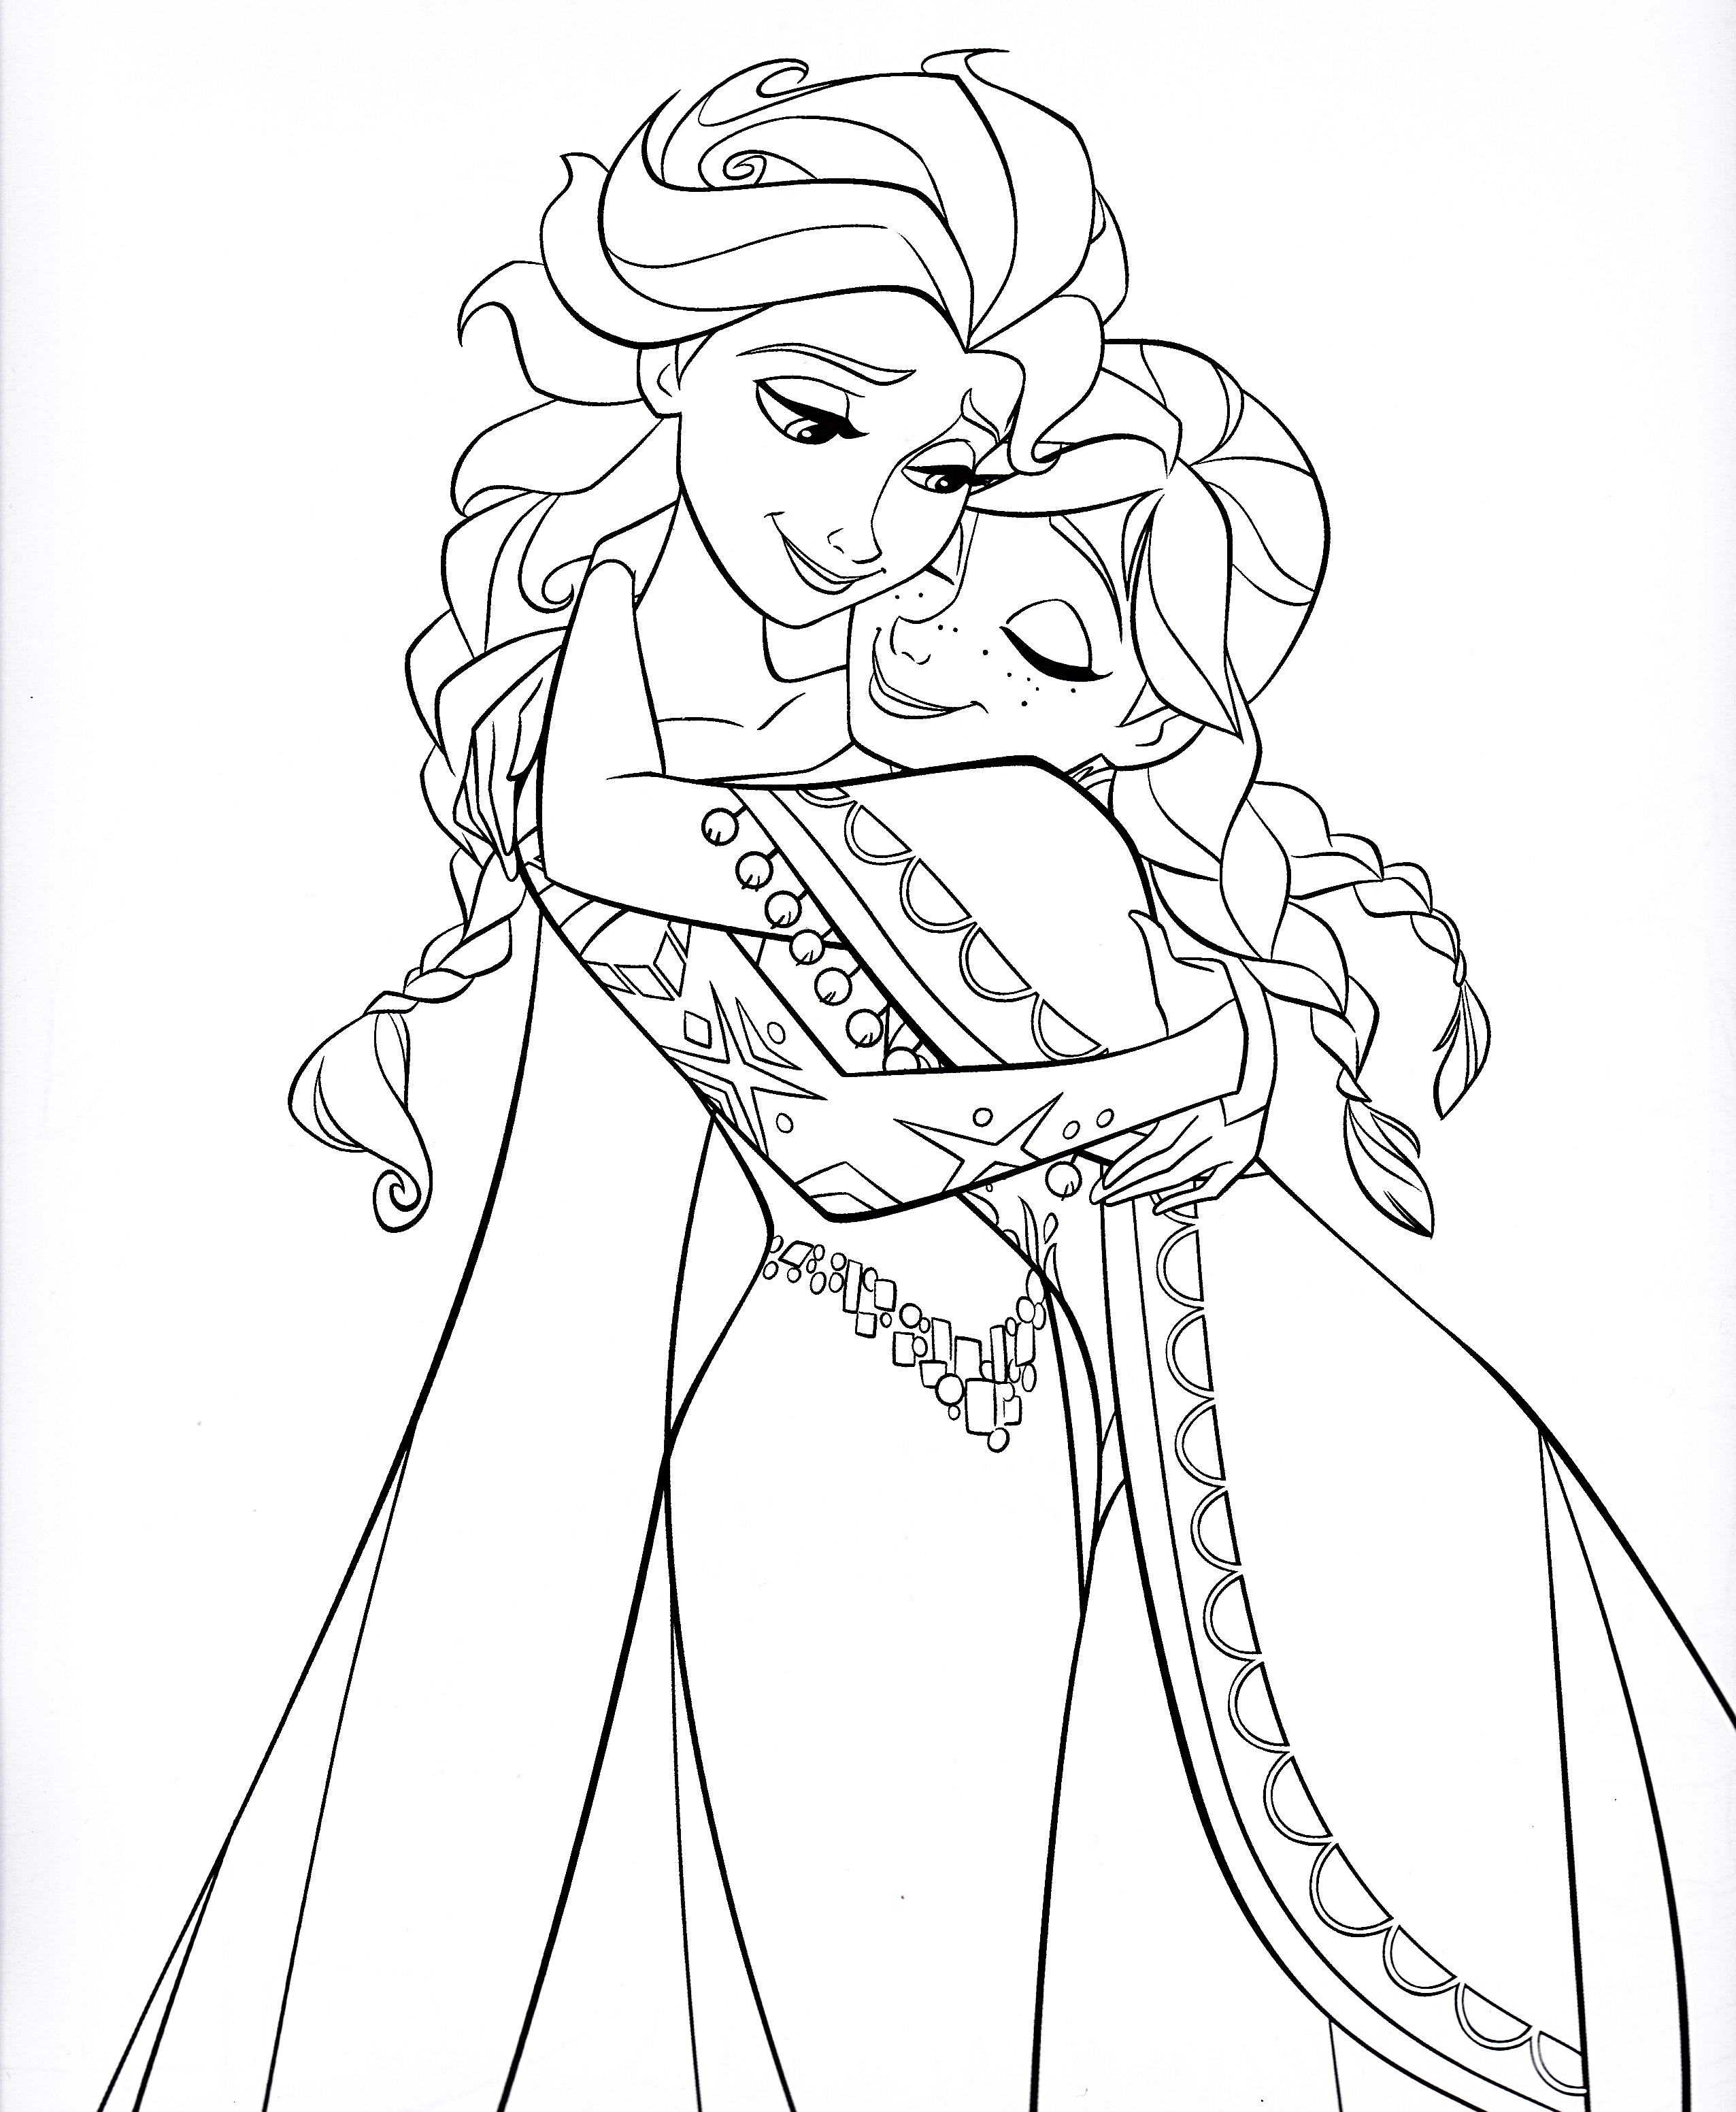 disney princess characters coloring pages - photo#11